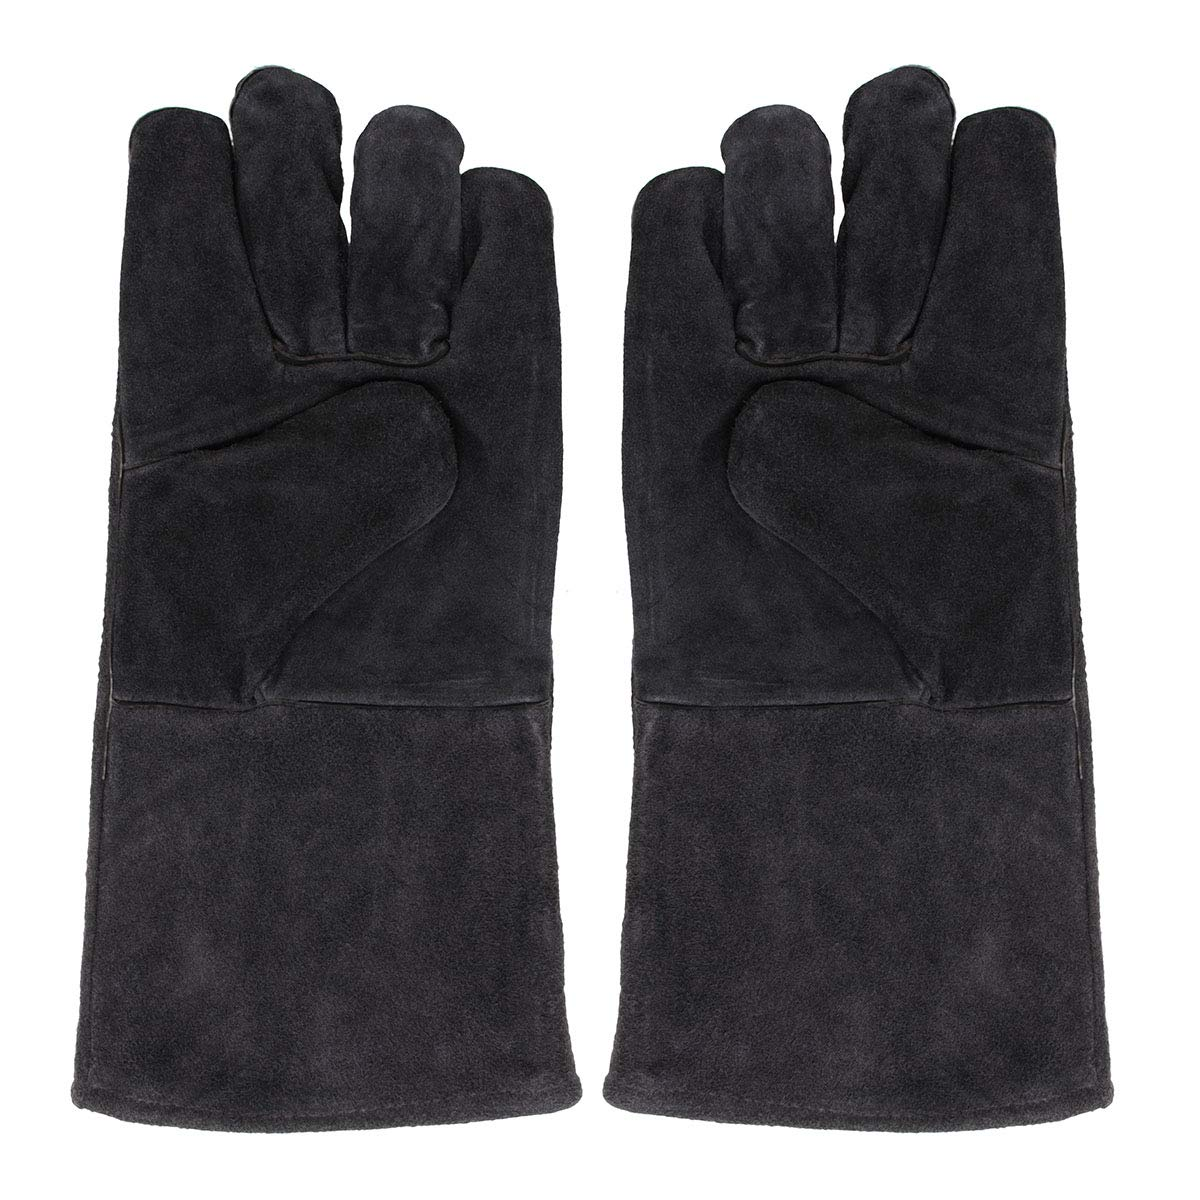 ZLF Welding Gloves Stoves Protect for Fire Log Wood Welder Hands Workplace Safety Glove Fireplace